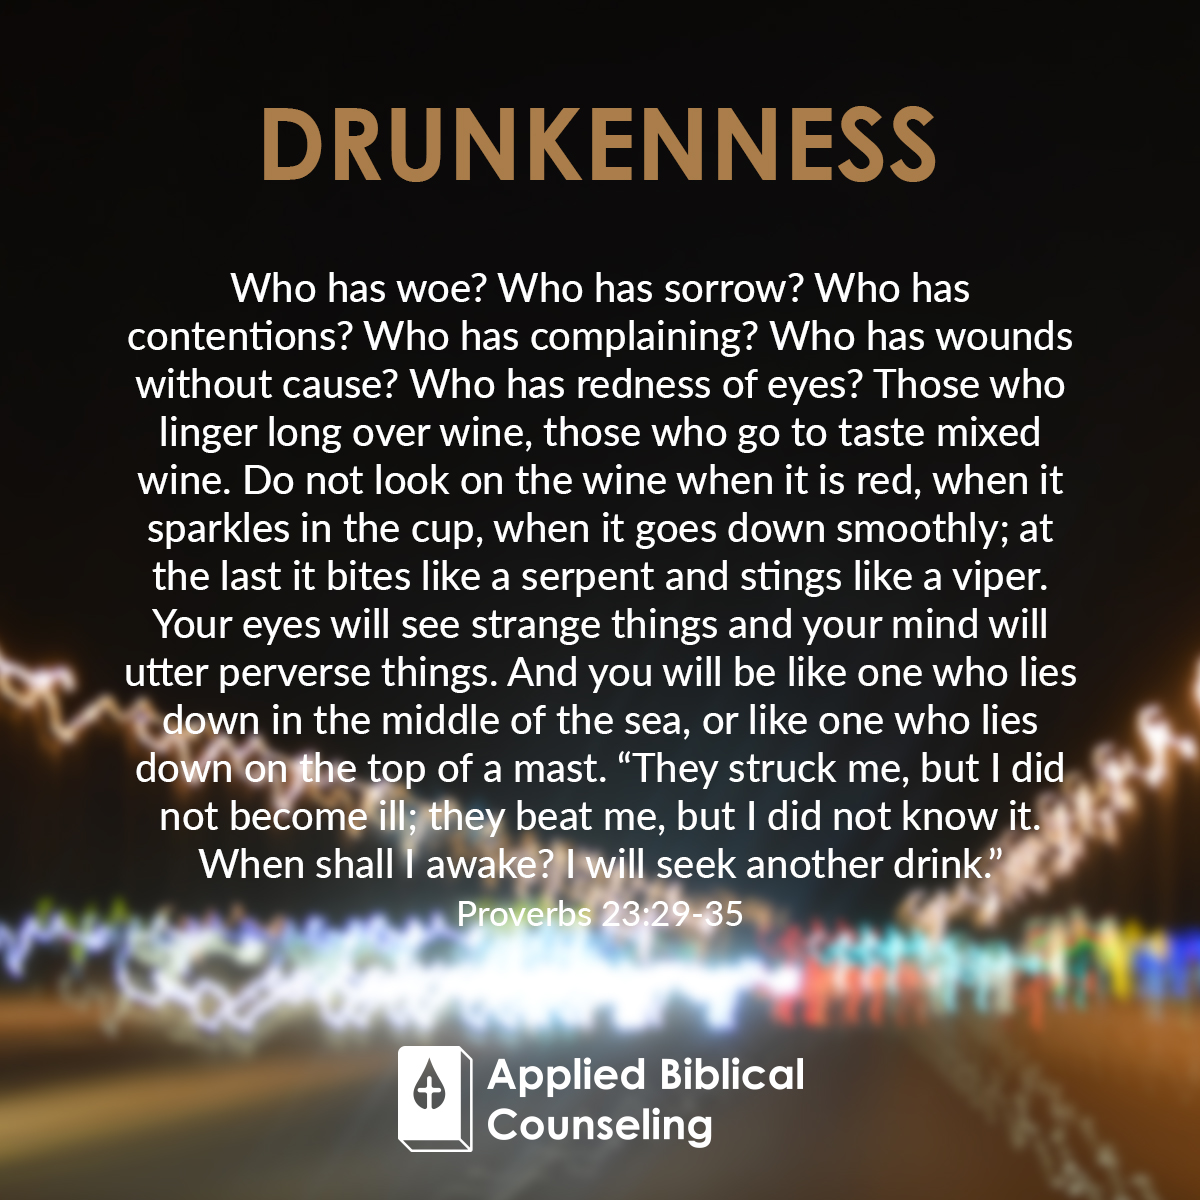 Applied Biblical Counseling Facebook w18 Drunkenness 2